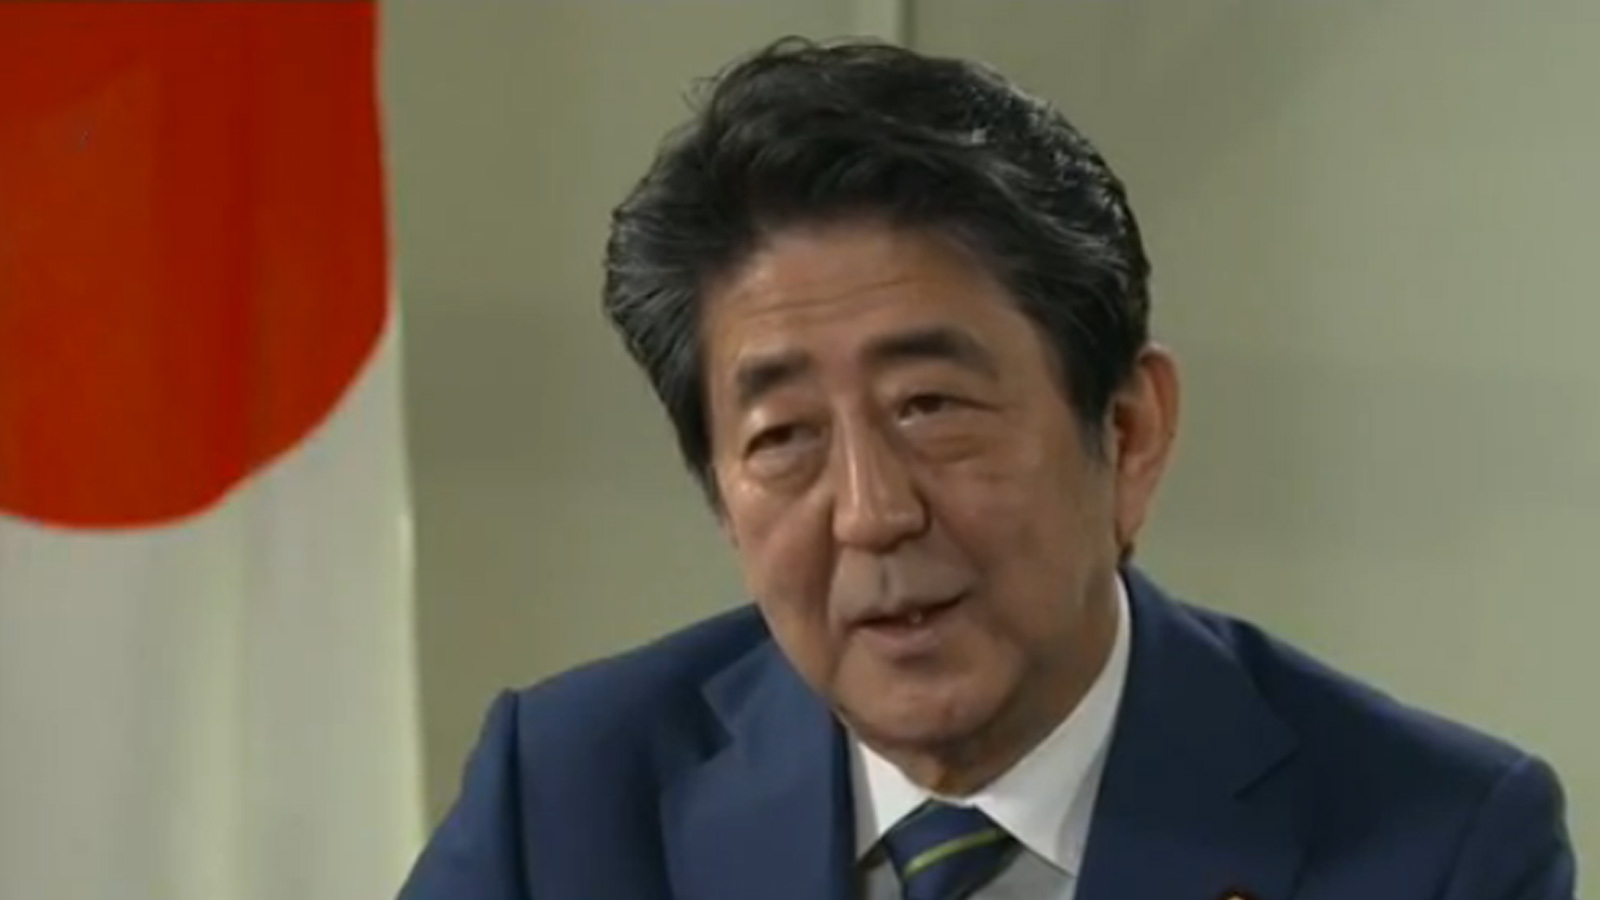 Shinzo Abe: China, Japan to show the world their resolution to join hands